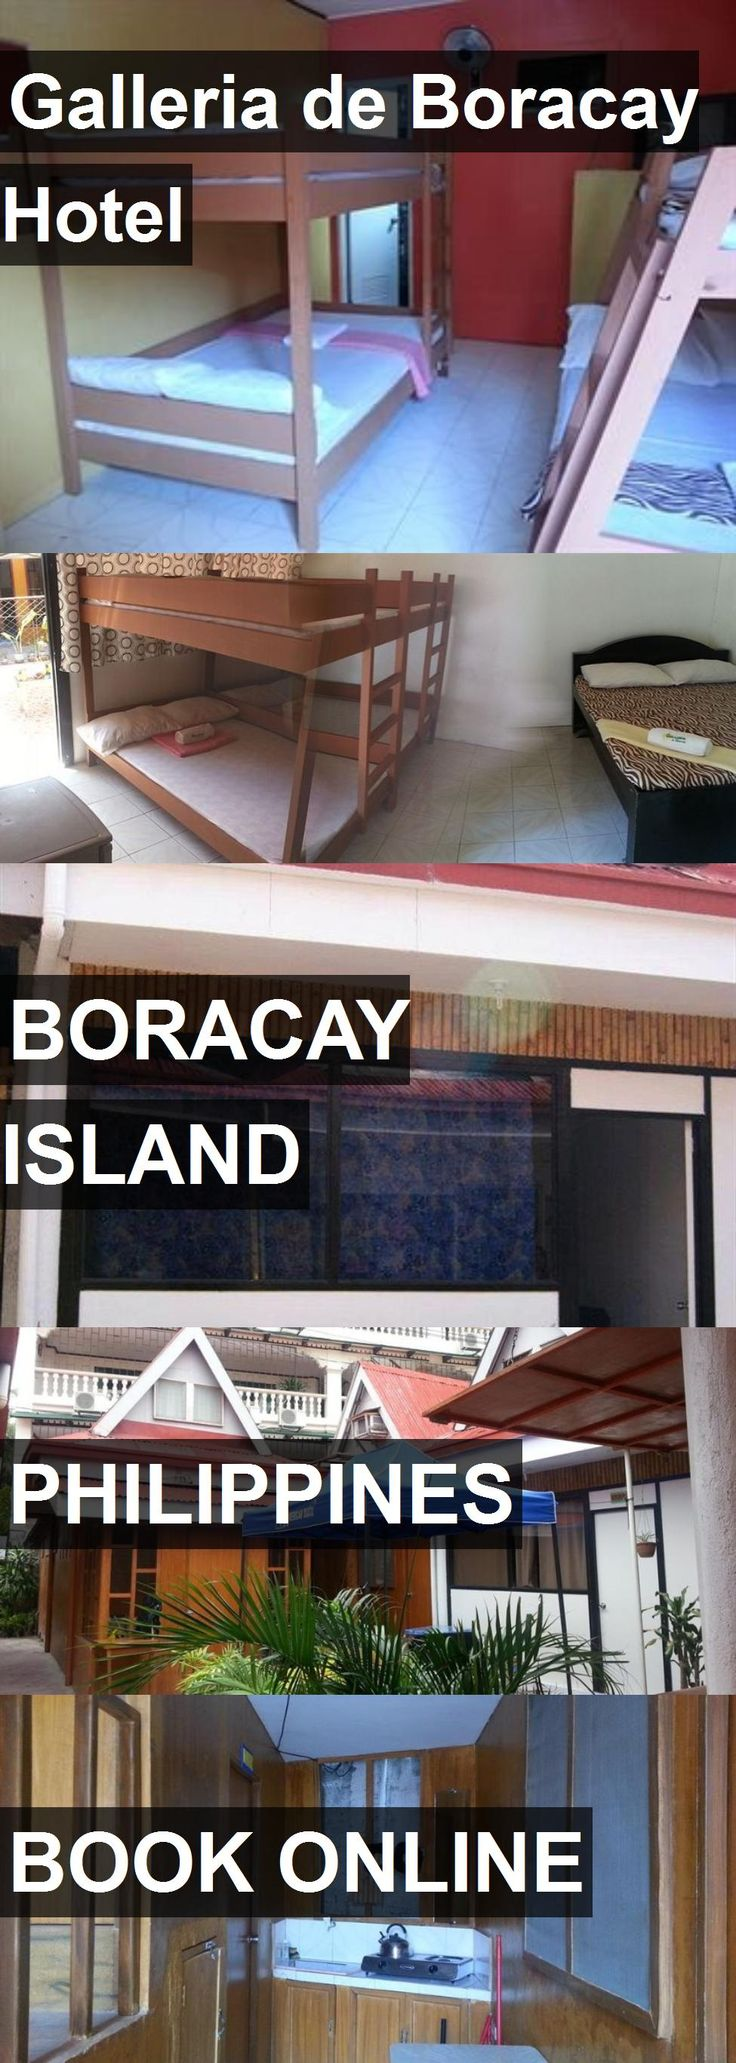 Hotel Galleria de Boracay Hotel in Boracay Island, Philippines. For more information, photos, reviews and best prices please follow the link. #Philippines #BoracayIsland #GalleriadeBoracayHotel #hotel #travel #vacation